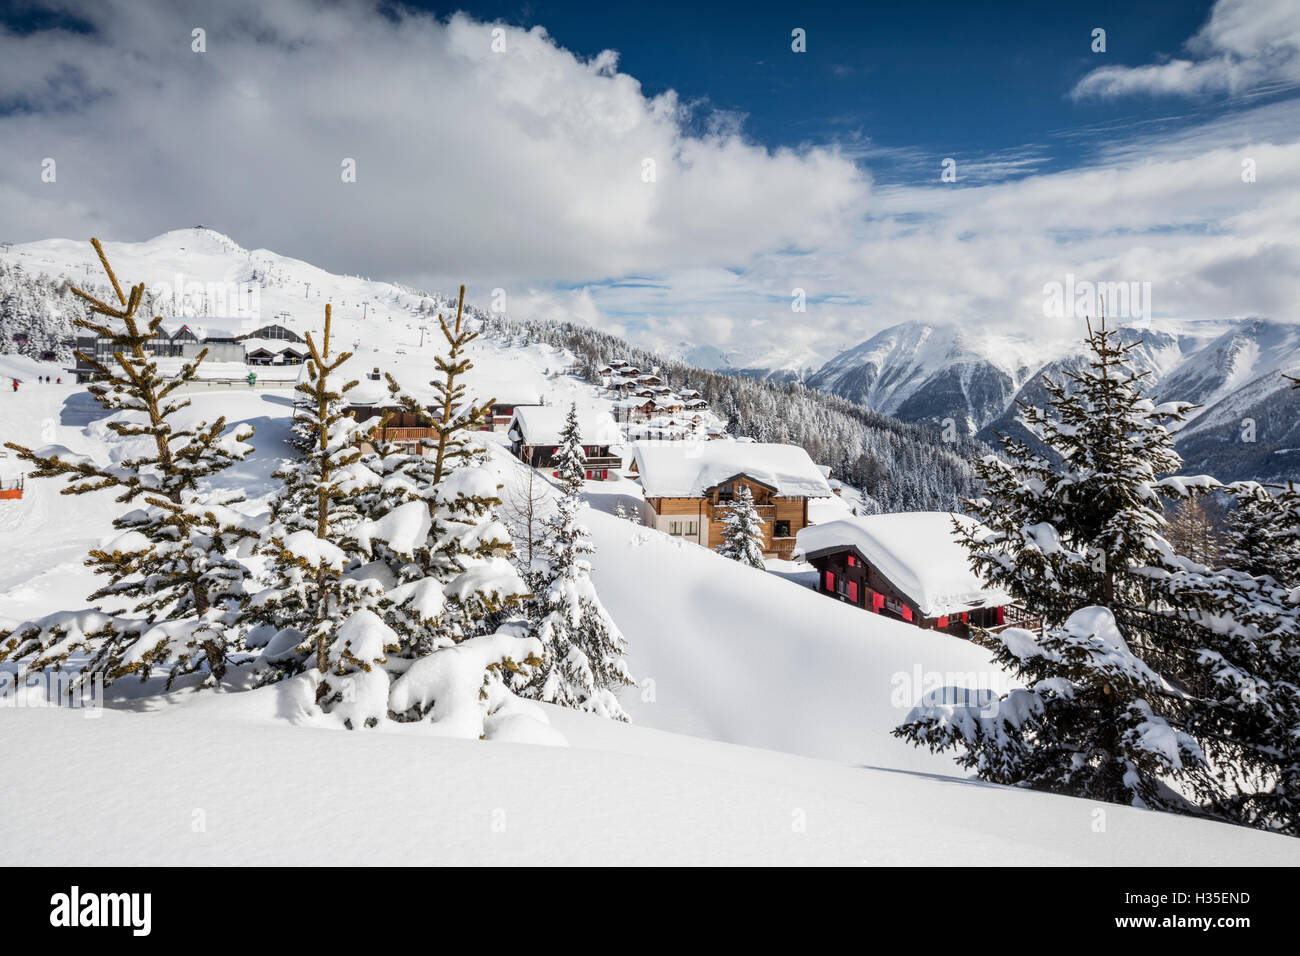 The winter sun shines on the snowy mountain huts and woods, Bettmeralp, district of Raron, canton of Valais, Switzerland - Stock Image